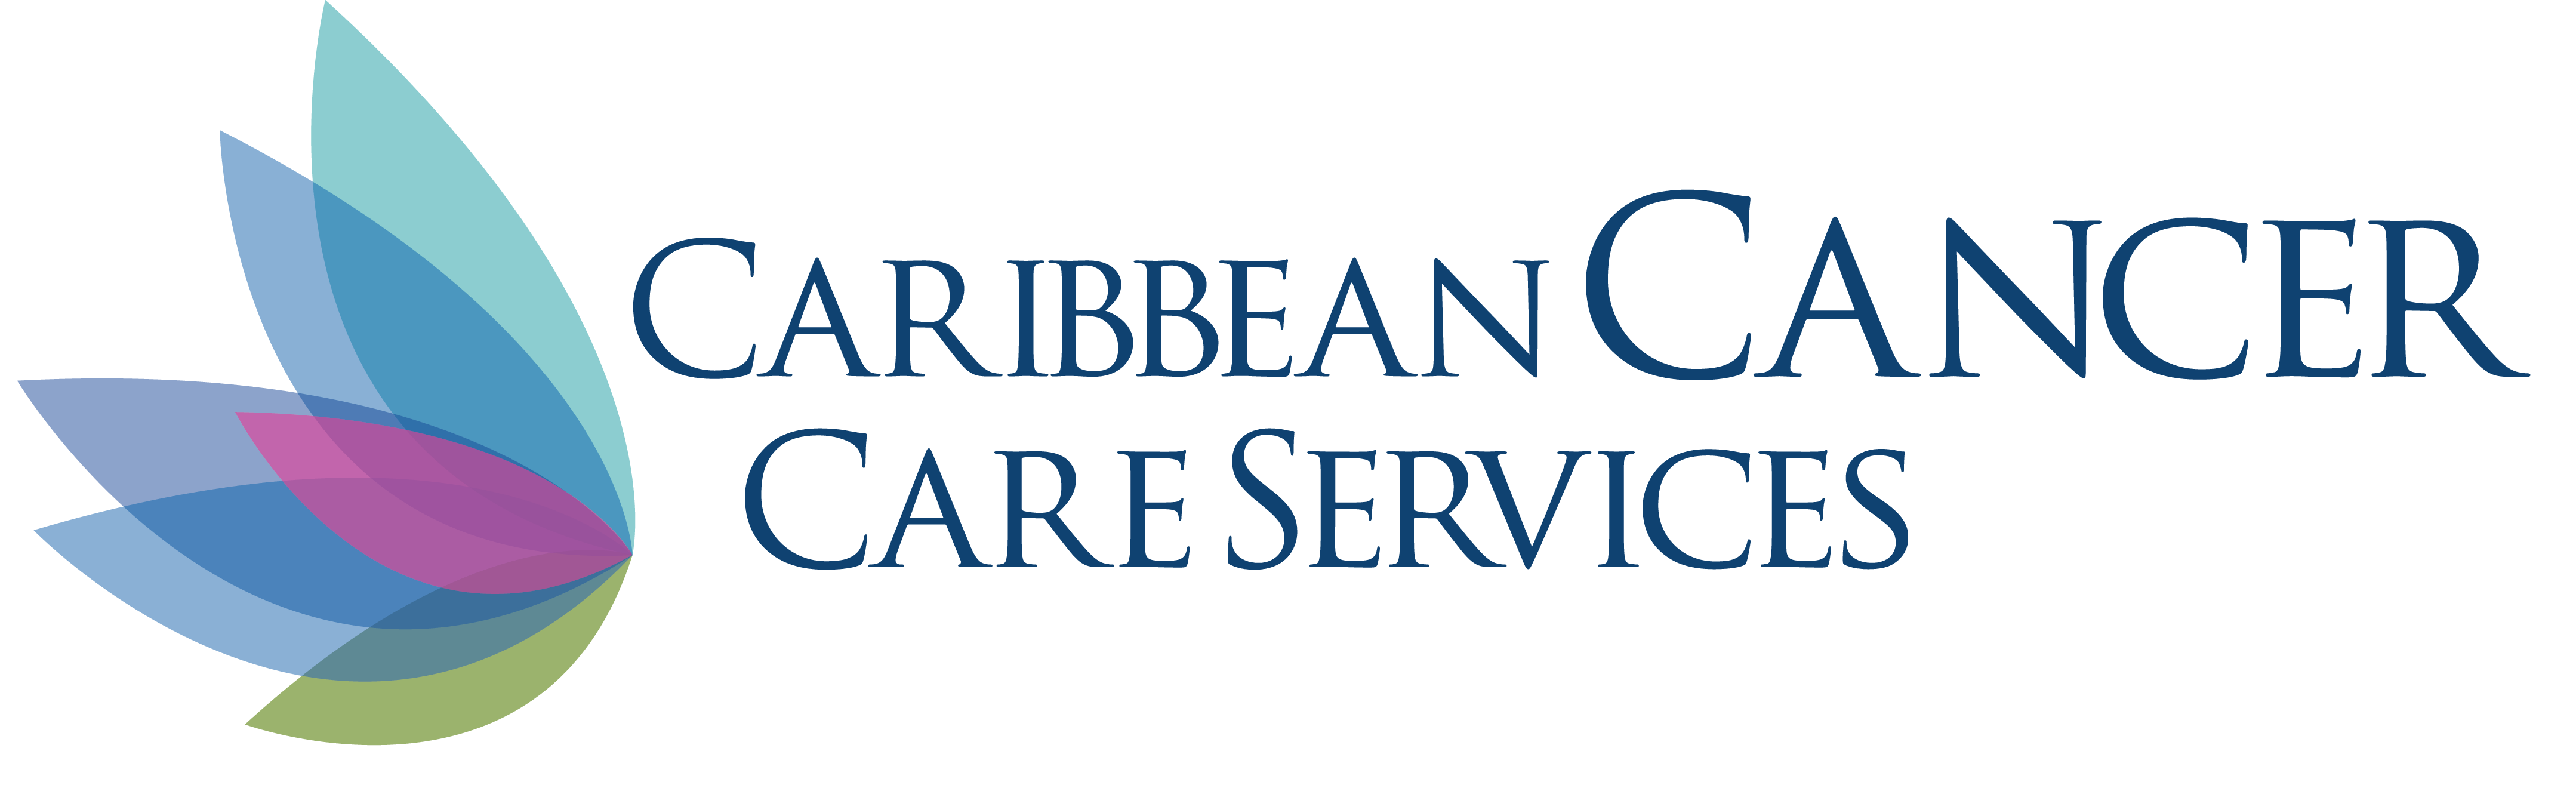 Caribbean Cancer Care Services